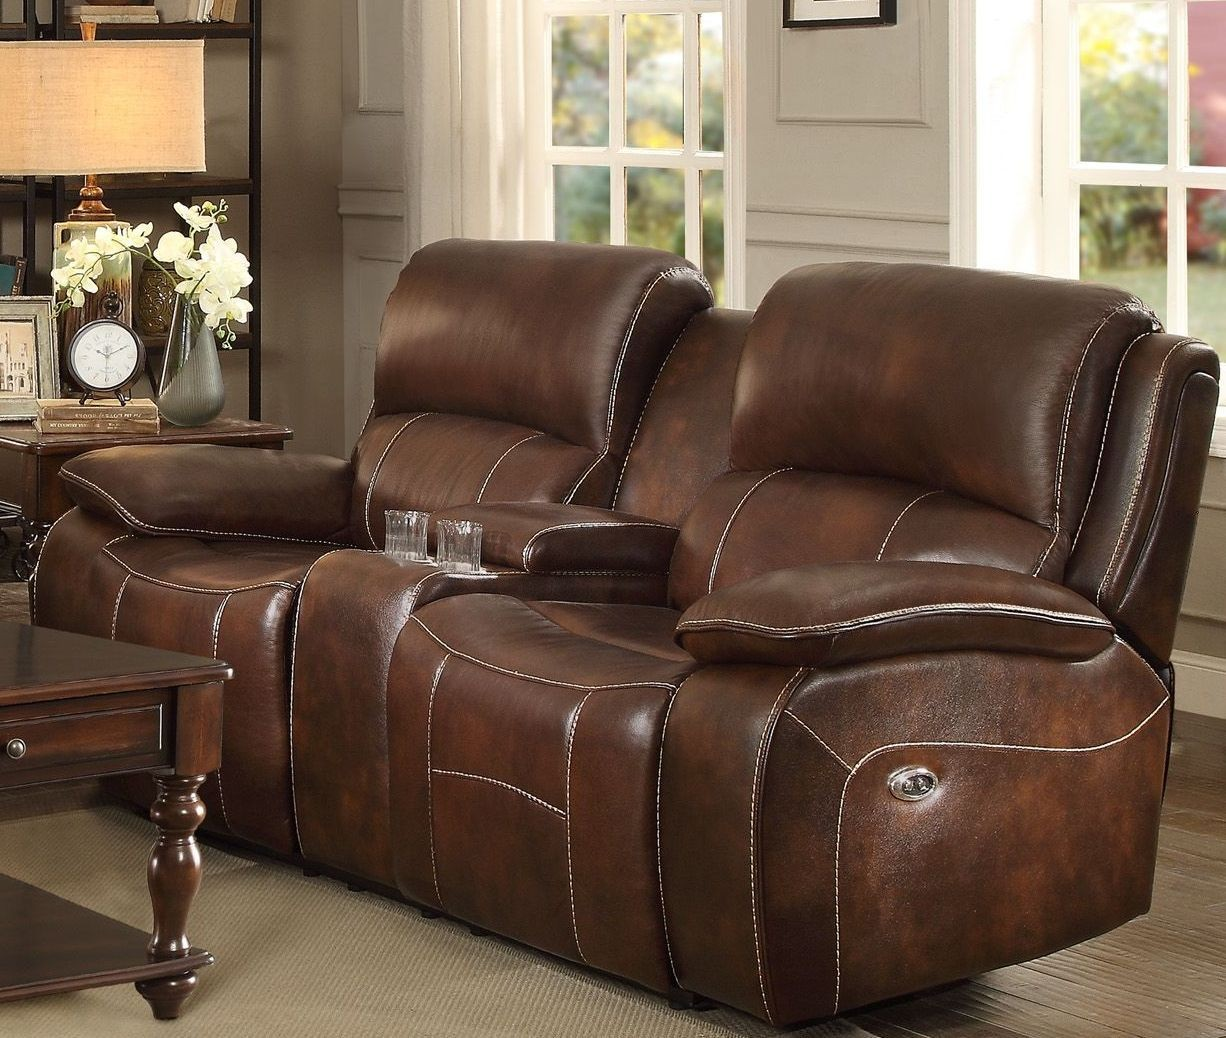 Mahala Brown Power Double Reclining Console Loveseat From Homelegance Coleman Furniture